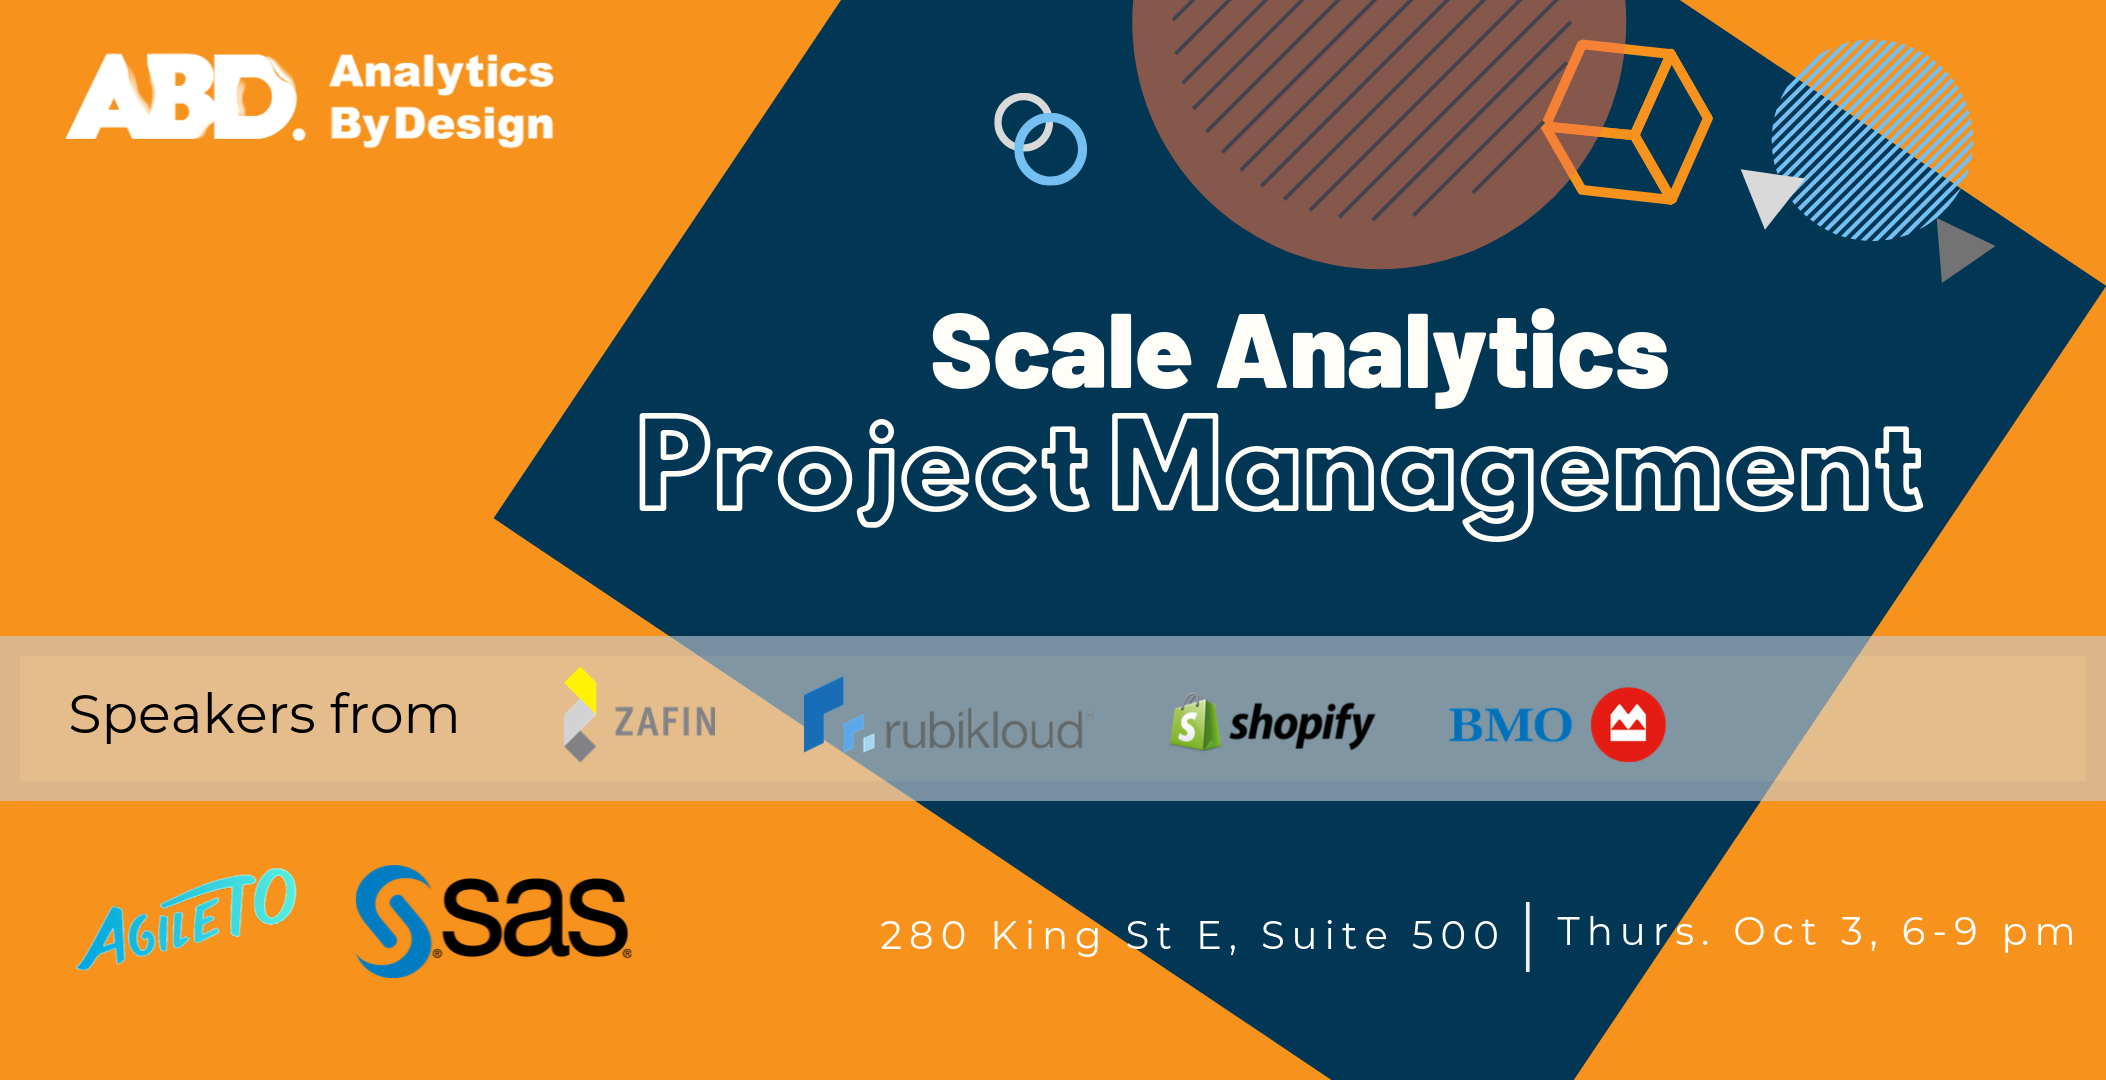 Scale Analytics Project Management eventbrite cover.png